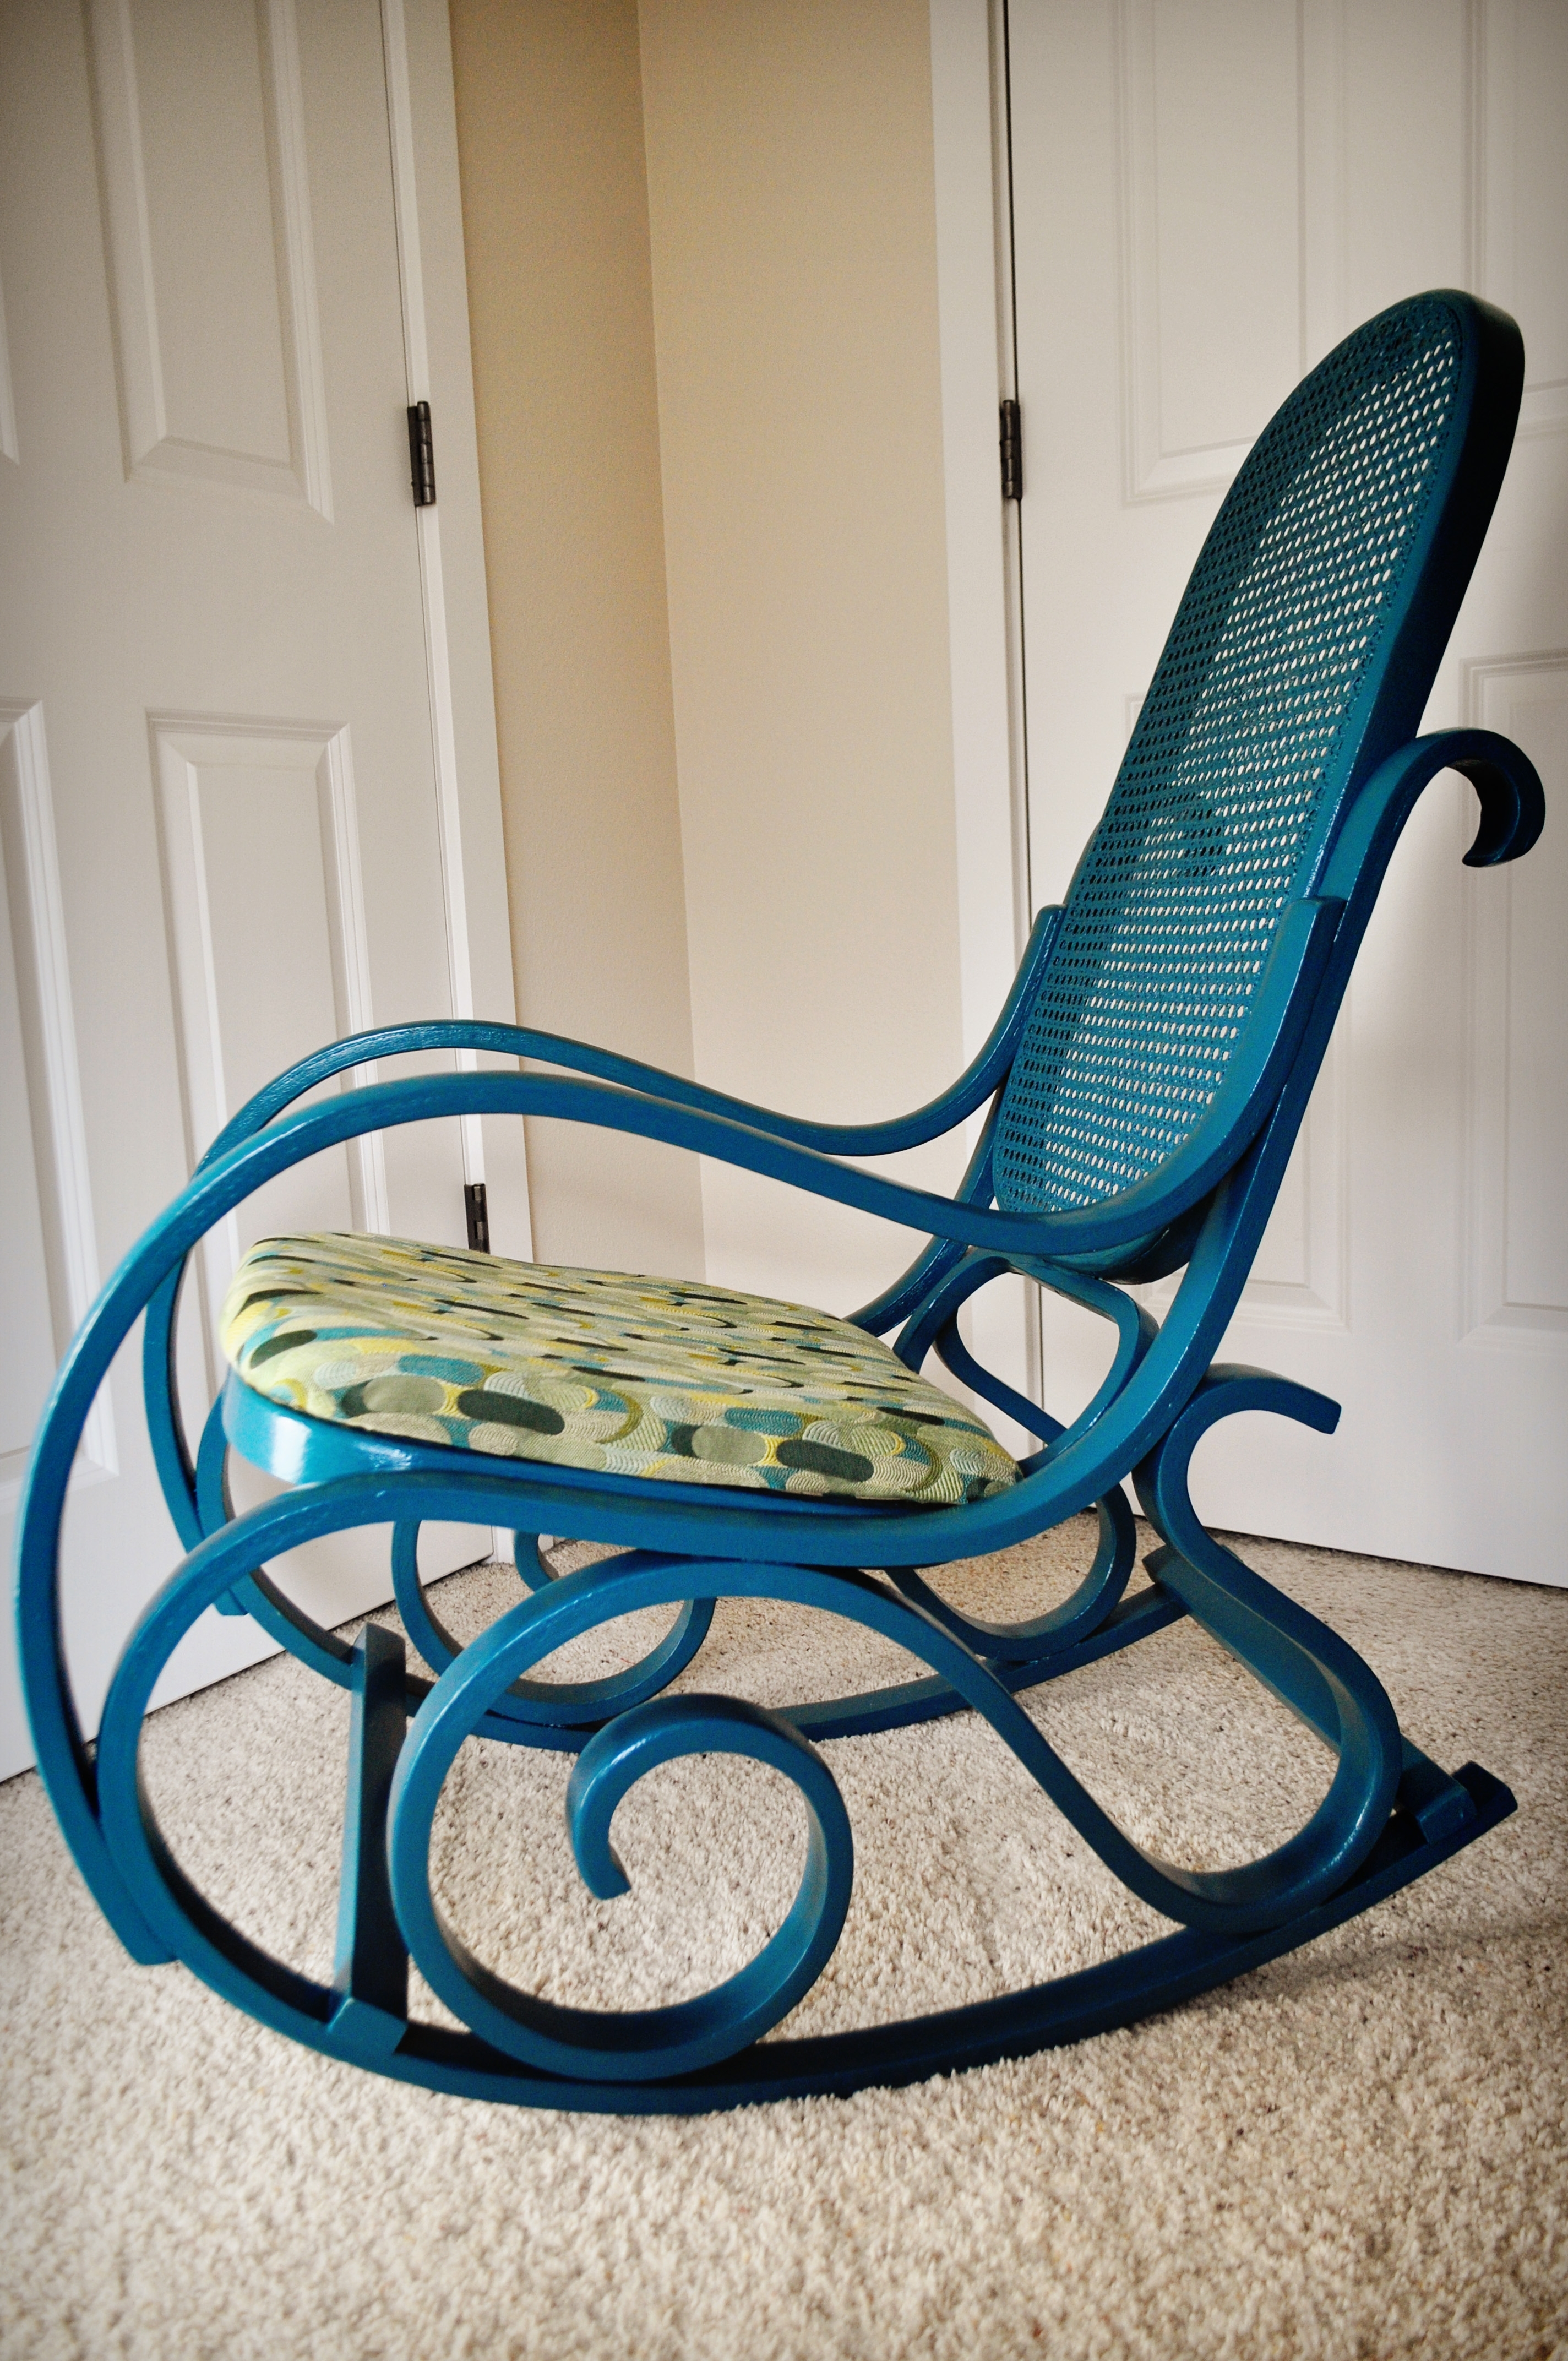 Nantucket Outdoor Rocking Chair Home Chair Designs Pertaining To Outdoor Rocking Chairs With Cushions Good Outdoor Rocking Chairs With Cushions